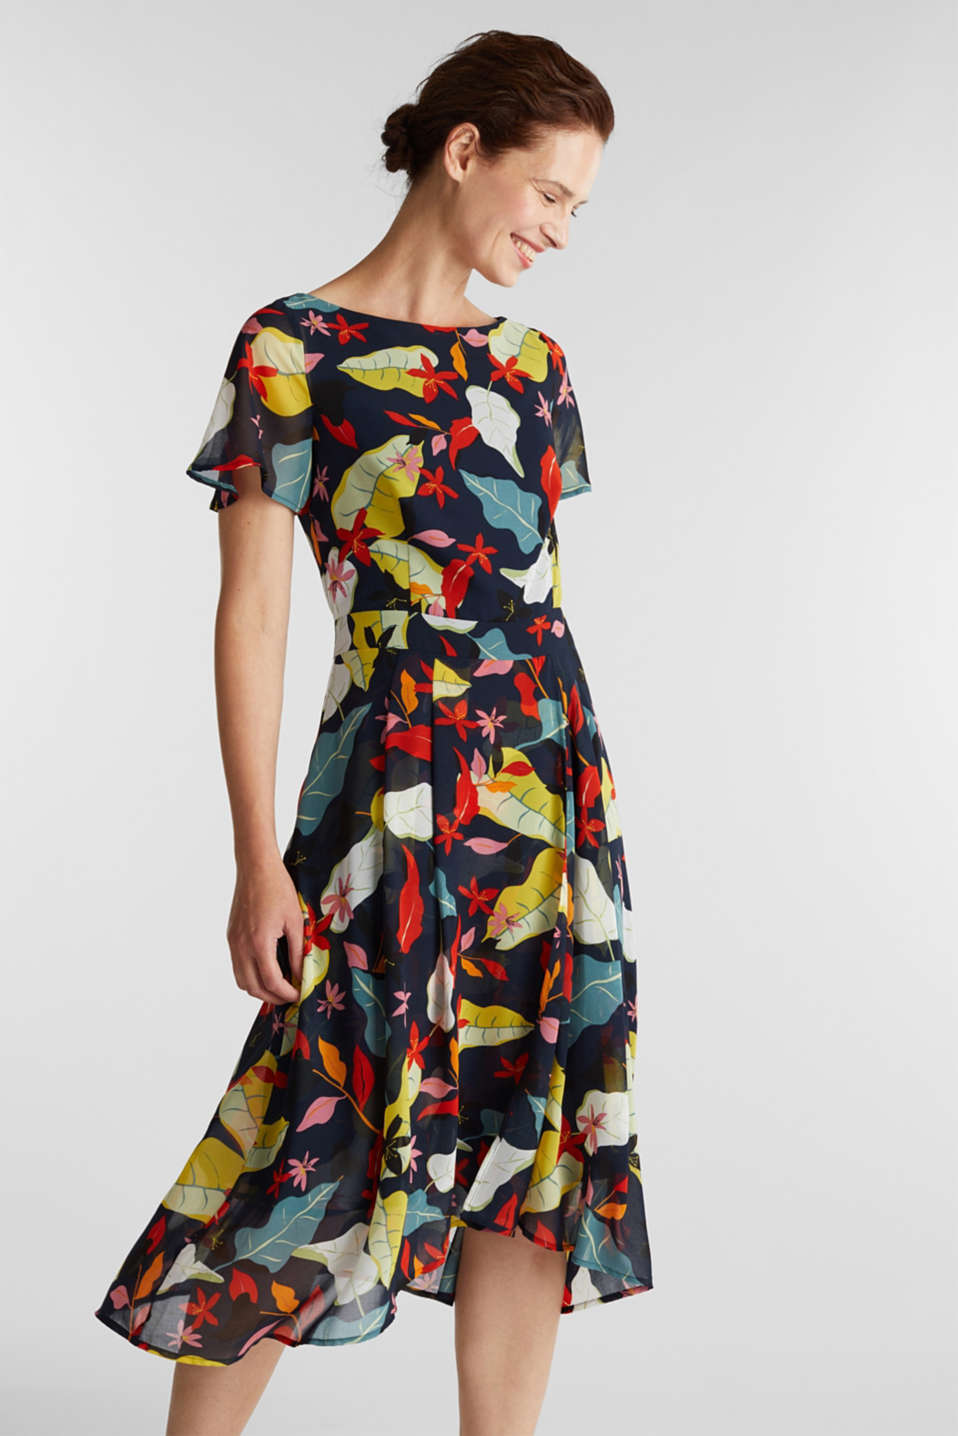 Esprit - Chiffon dress with floral print